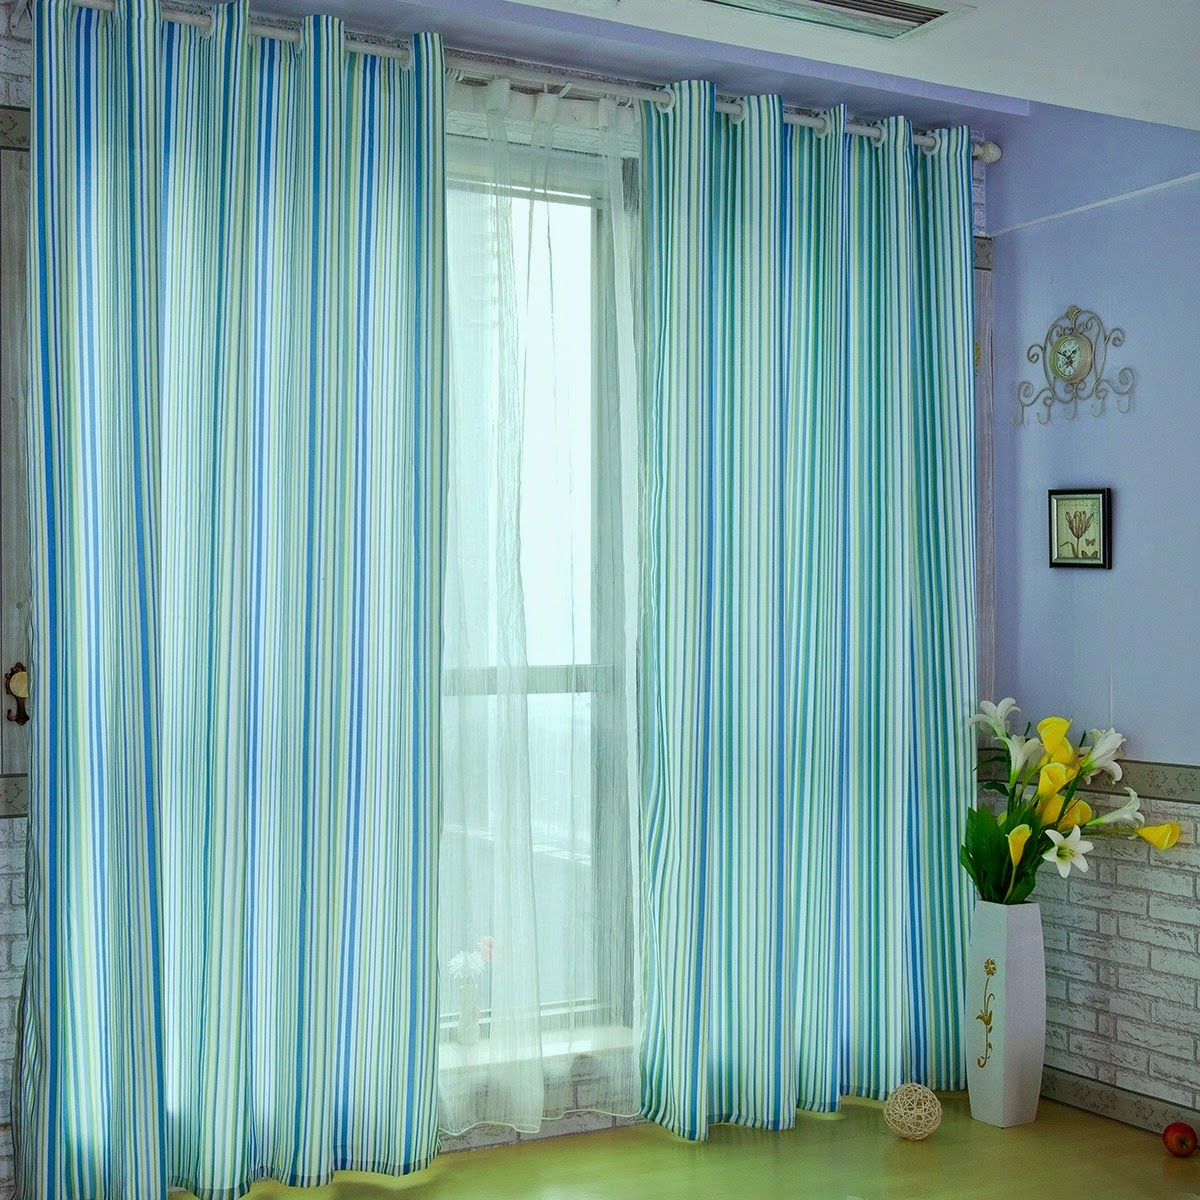 How to Choose Curtain Patterns